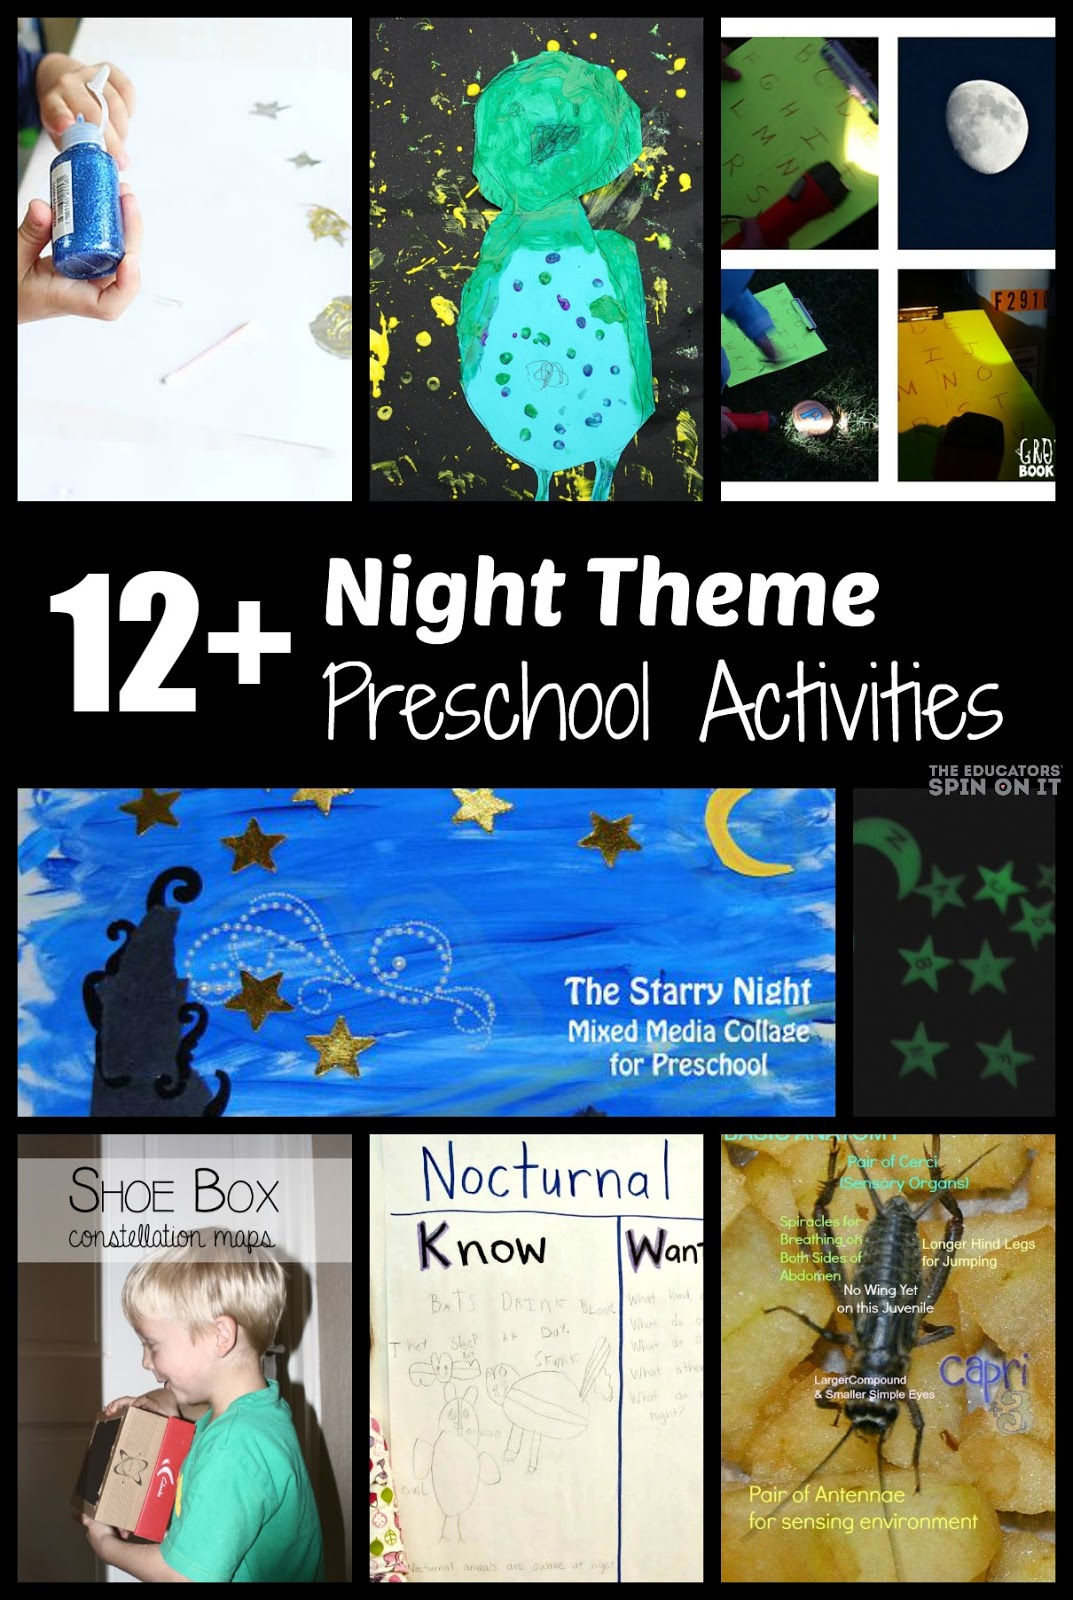 The Educators Spin On It Nighttime Preschool Activities